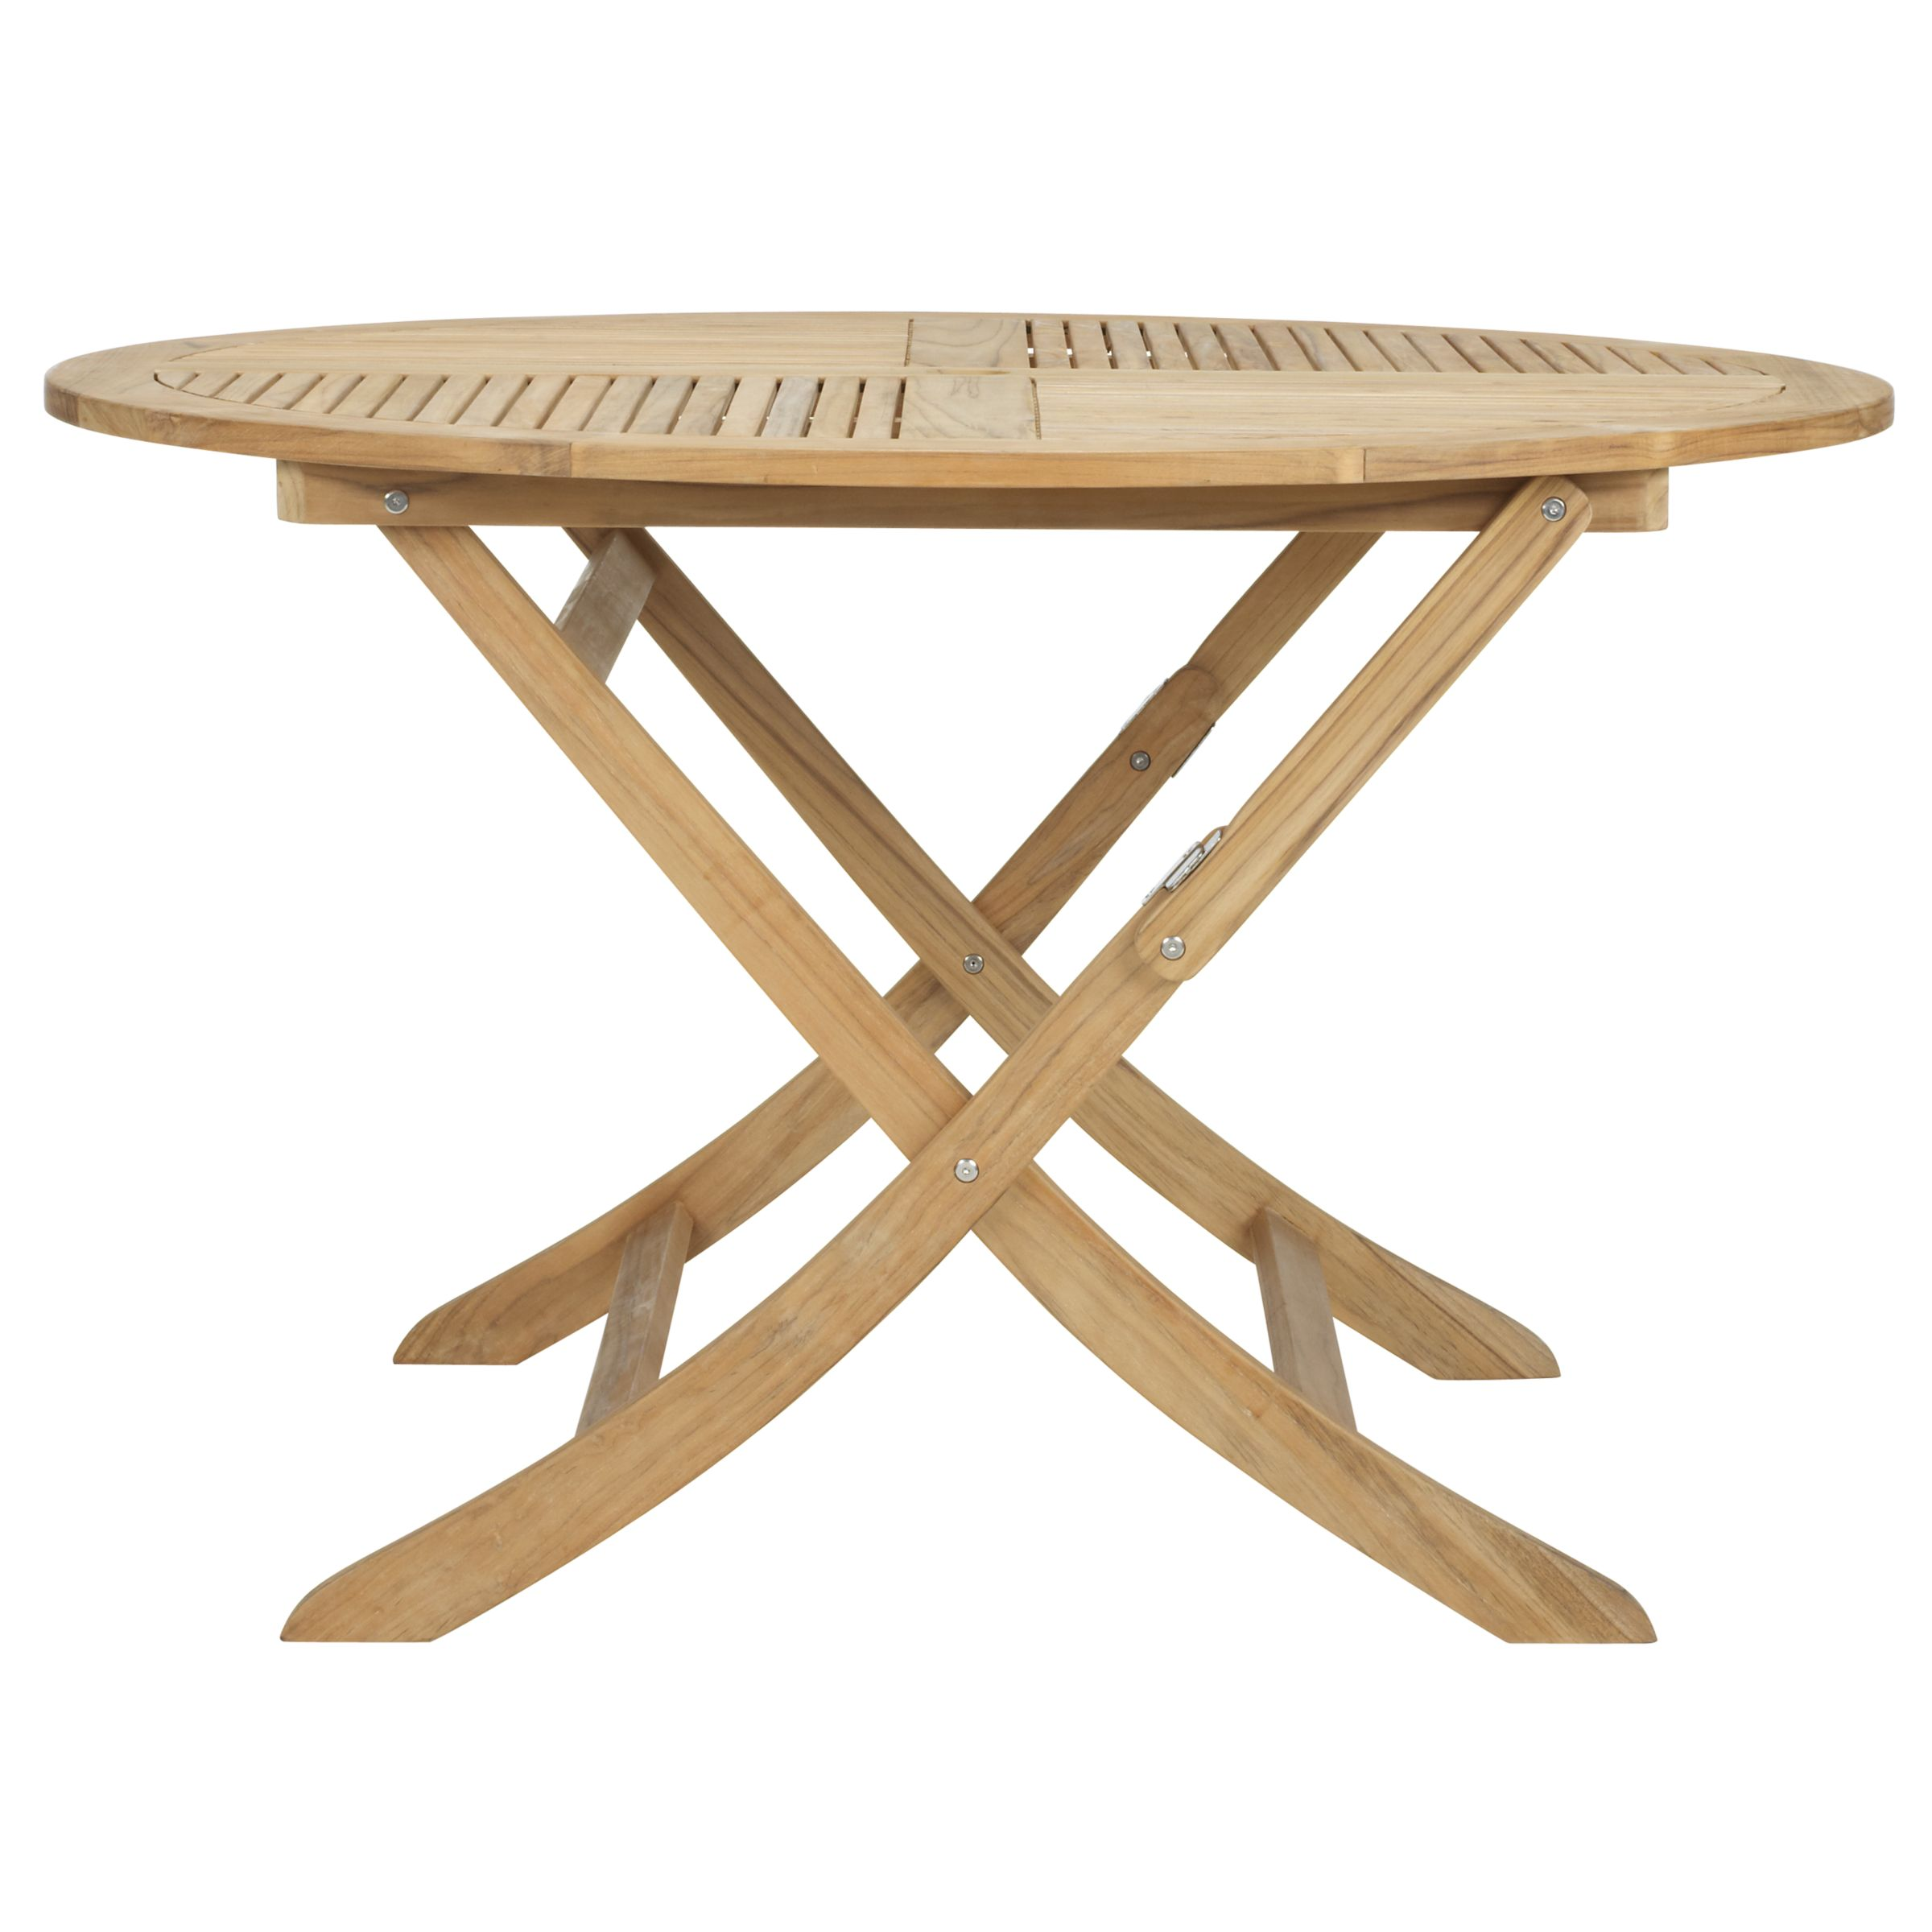 John Lewis Cortona Round Folding Outdoor Table